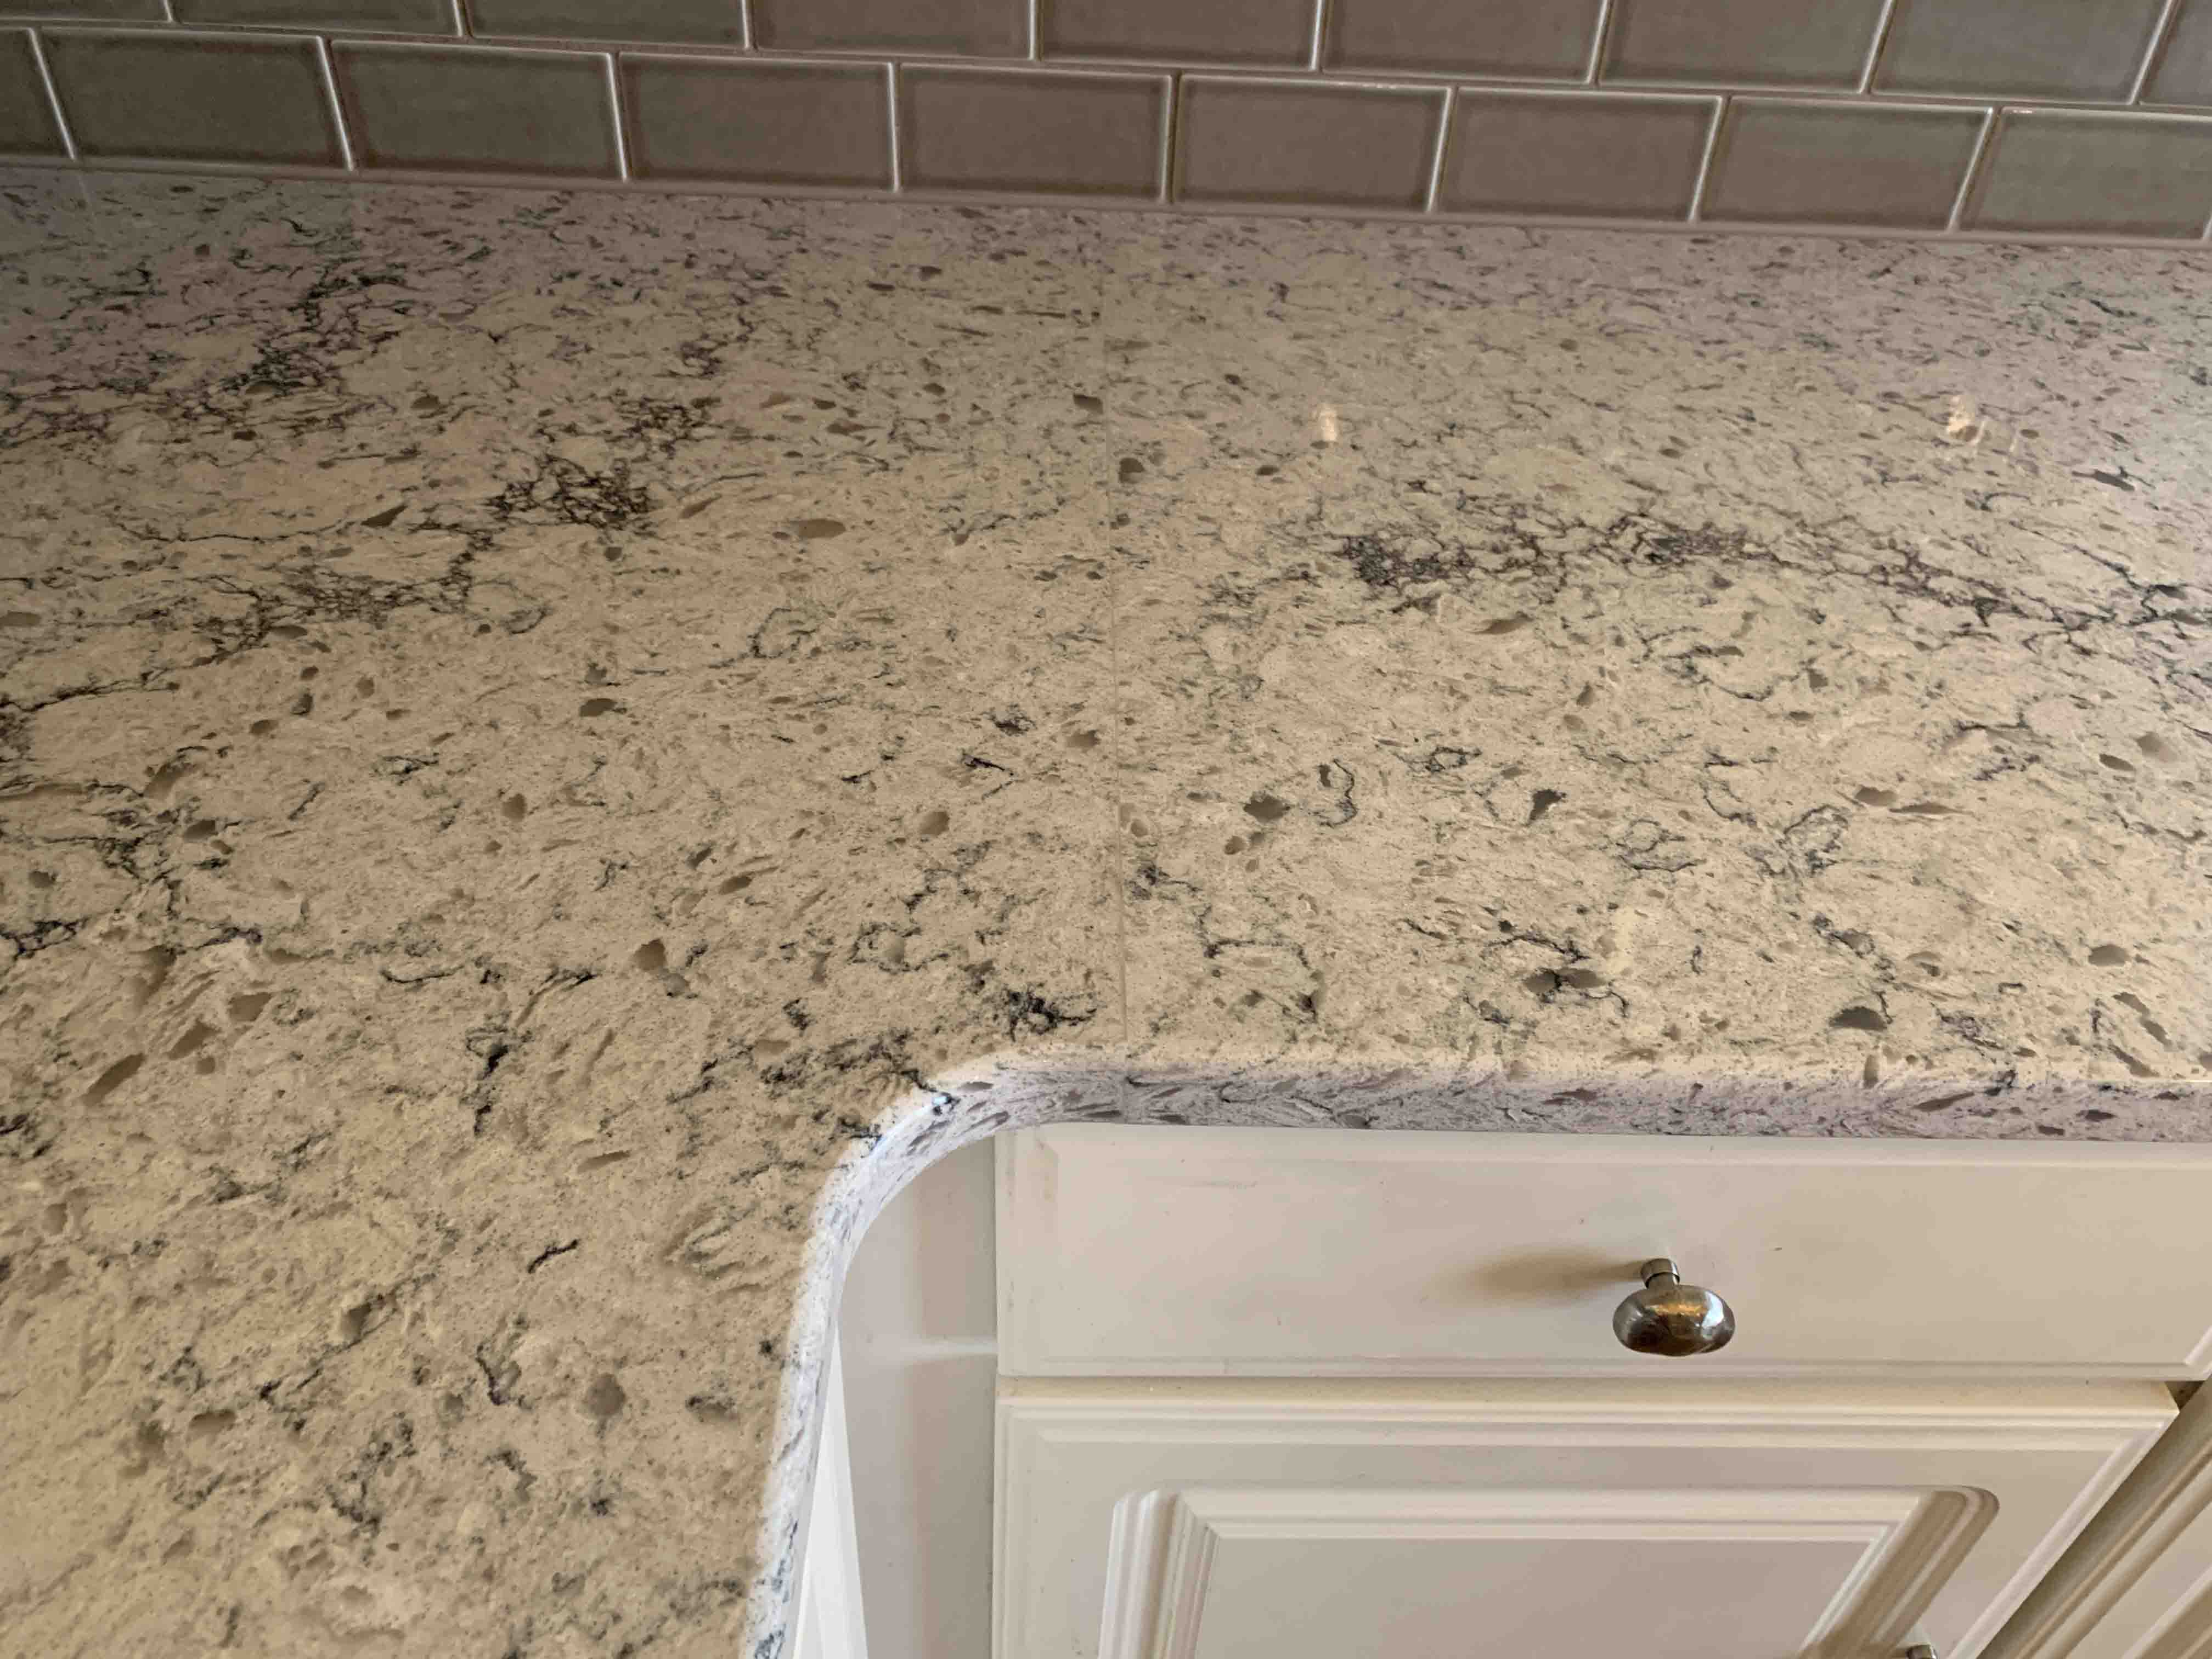 WILL MY STONE COUNTERTOPS HAVE SEAMS?